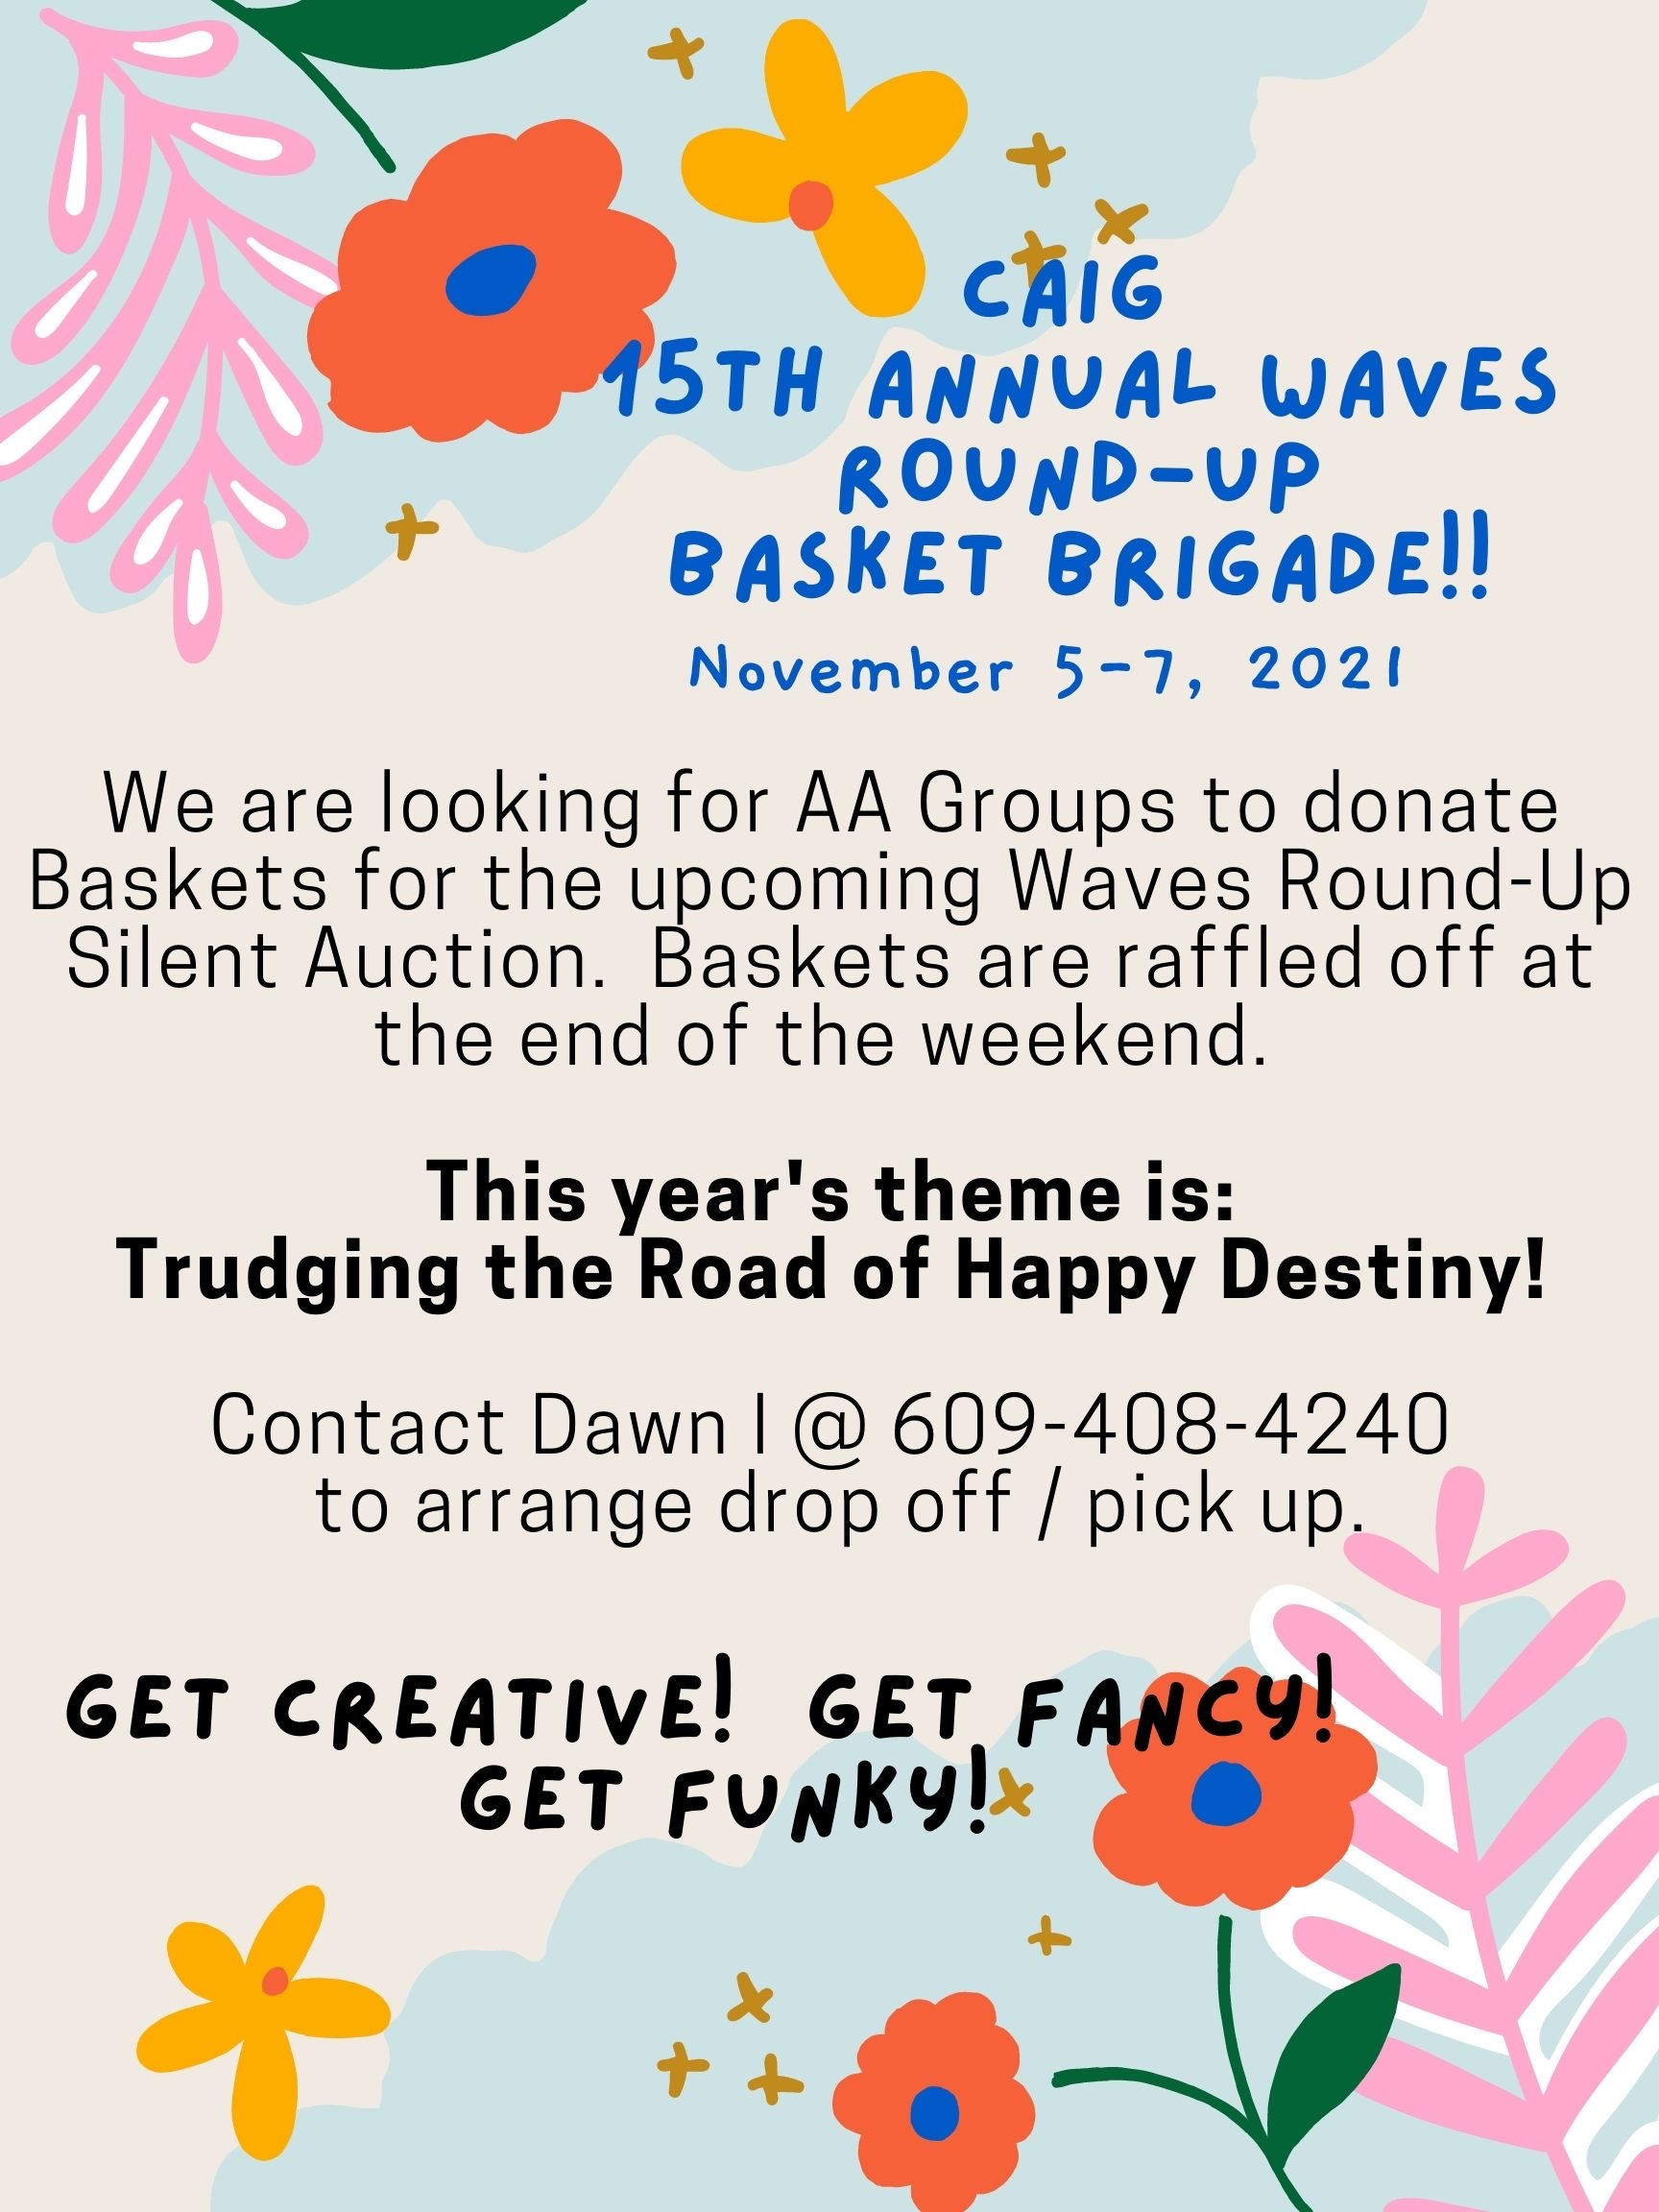 FOR THE ROUND UP – WE NEED YOUR BASKETS!!